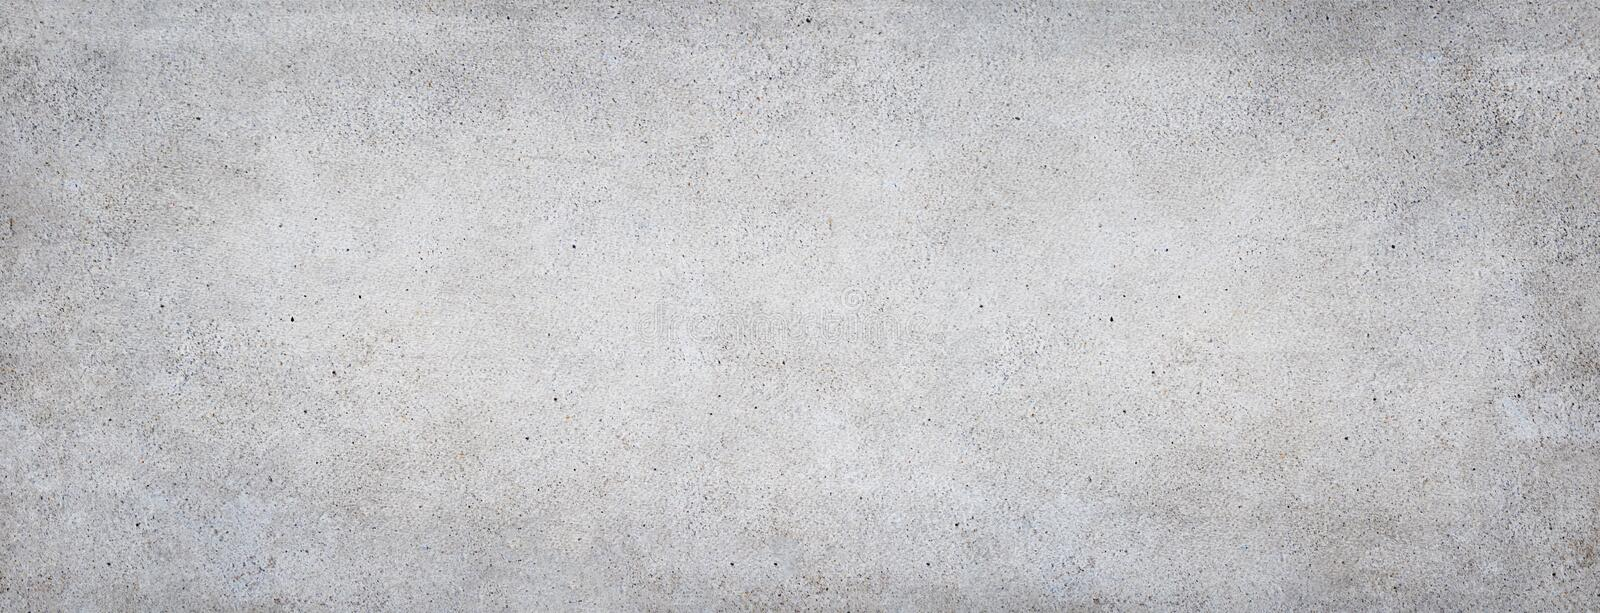 Concrete background. Grey stone banner royalty free stock image